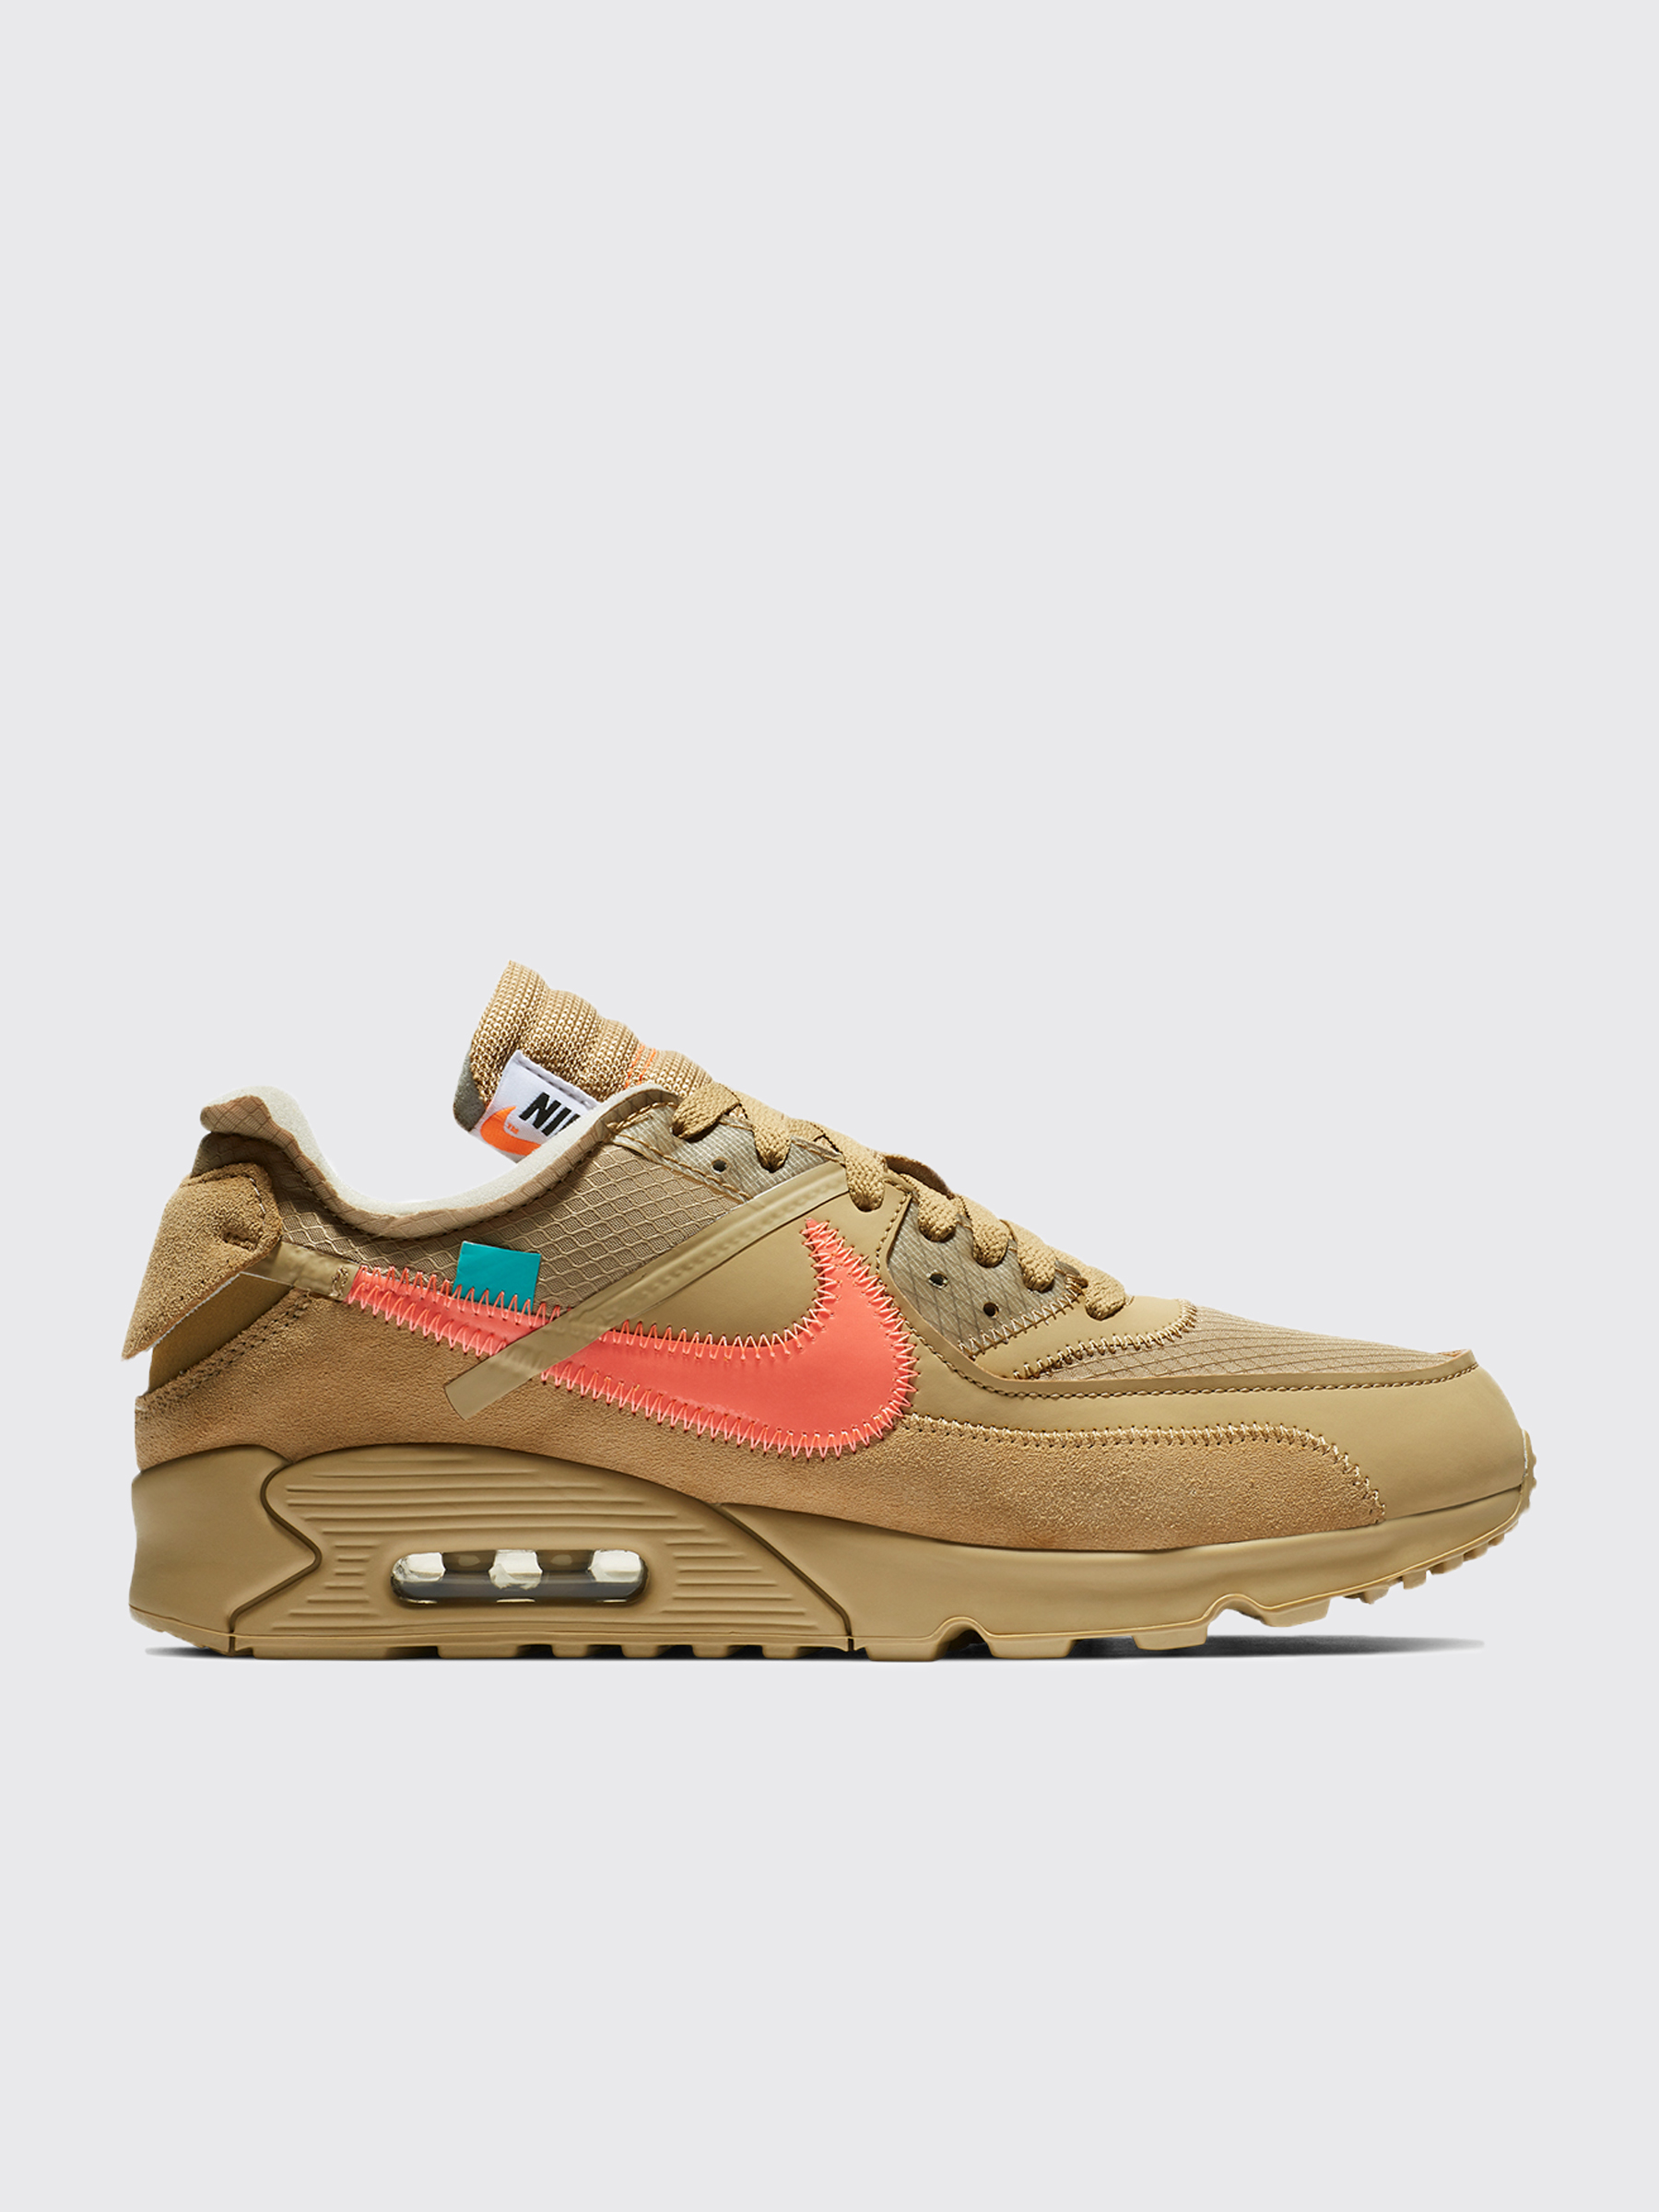 new product 20f4c 5d714 Très Bien - Nike x Off-White The 10  Air Max 90 Parachute Beige ...